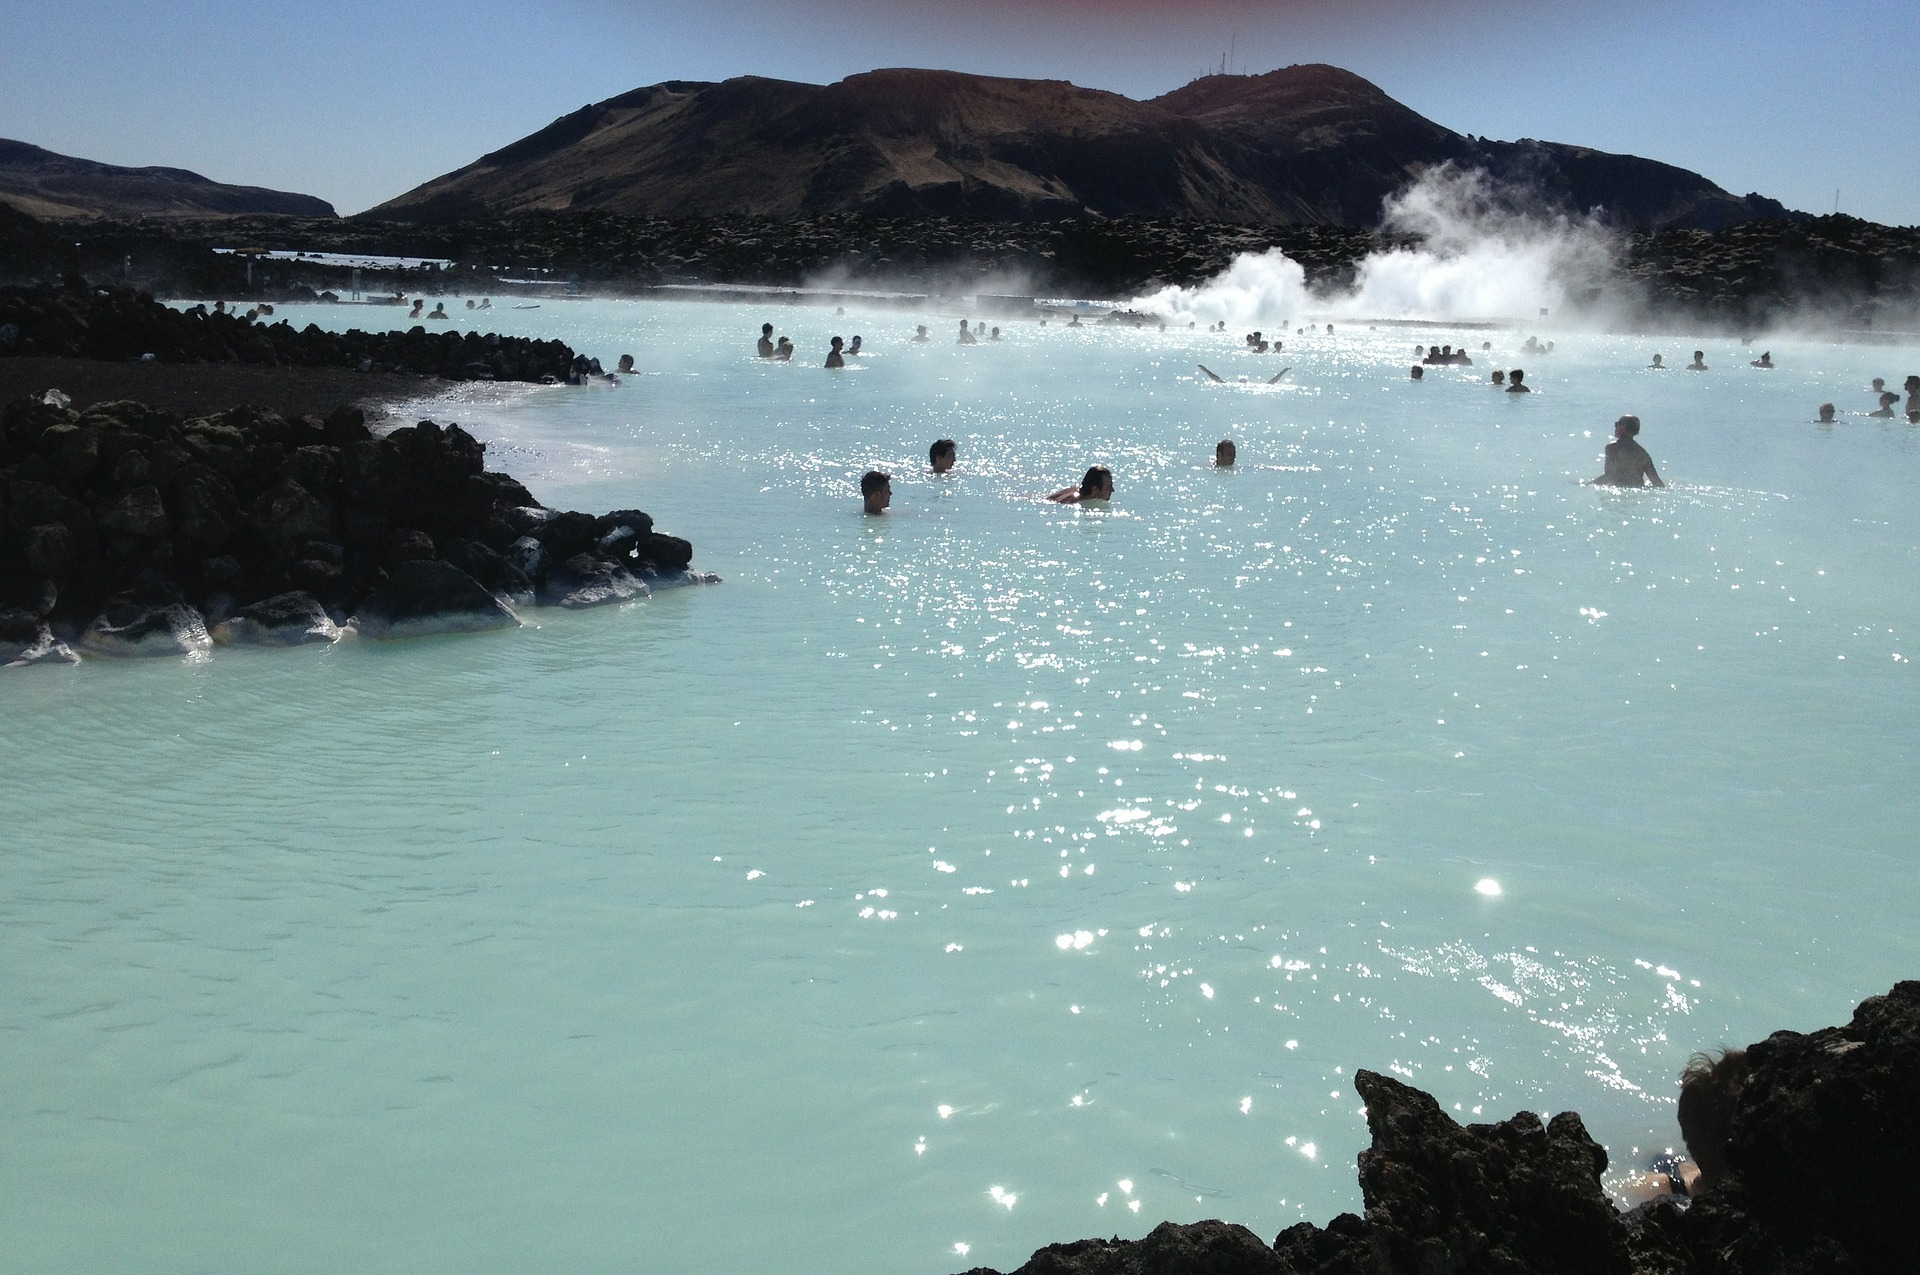 Blue Lagoon, the most famous spa in Iceland